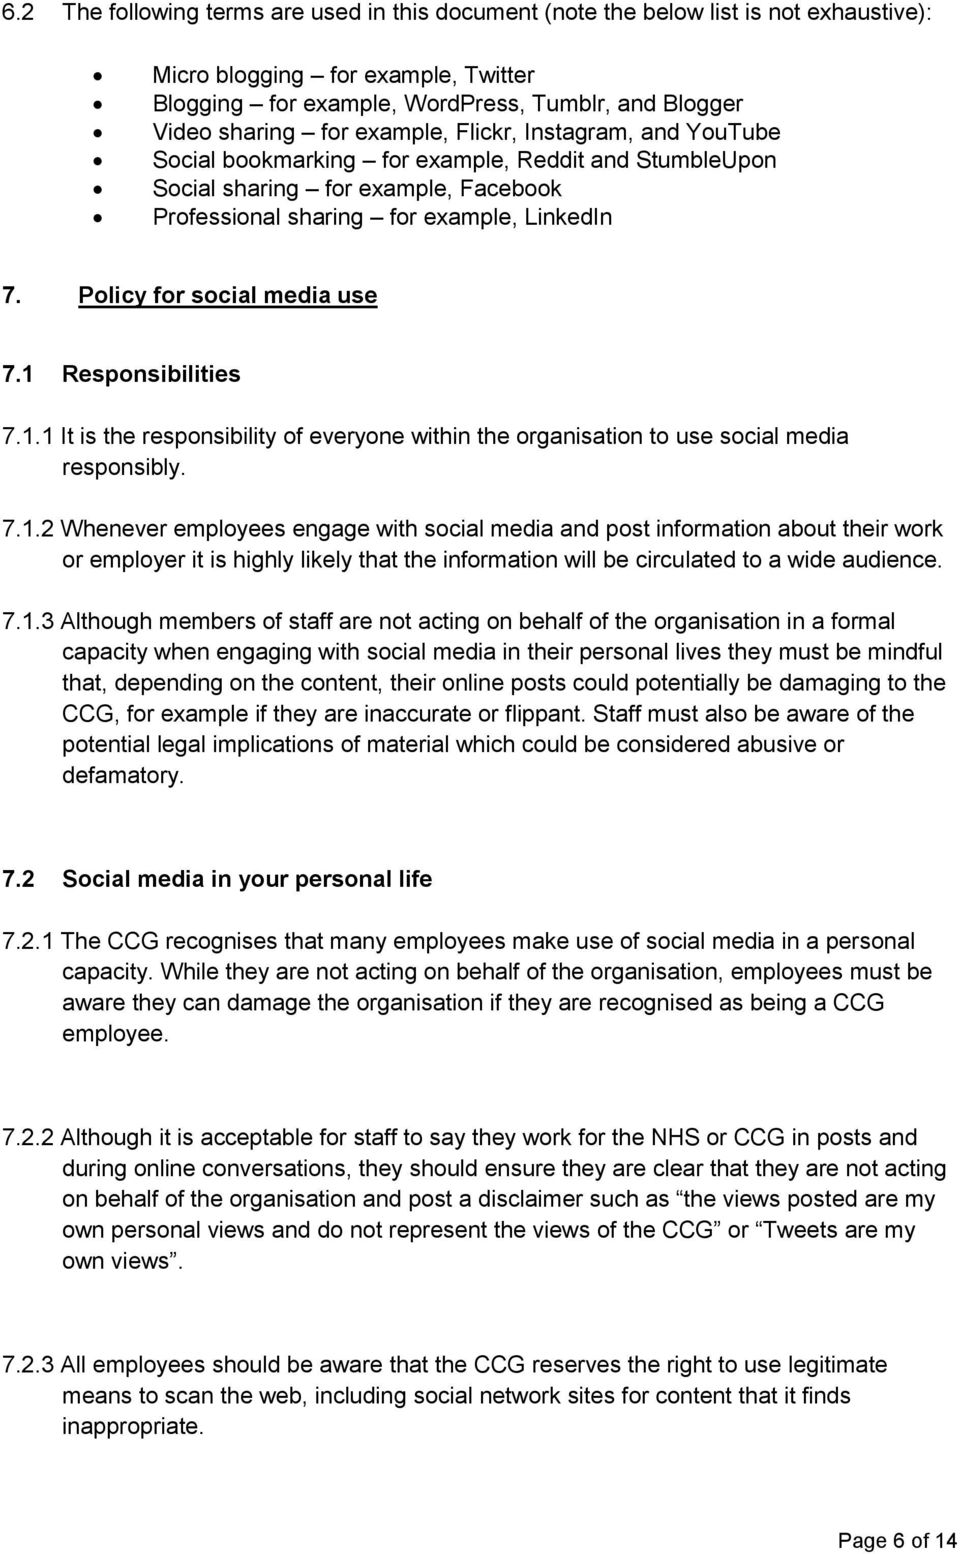 Policy for social media use 7.1